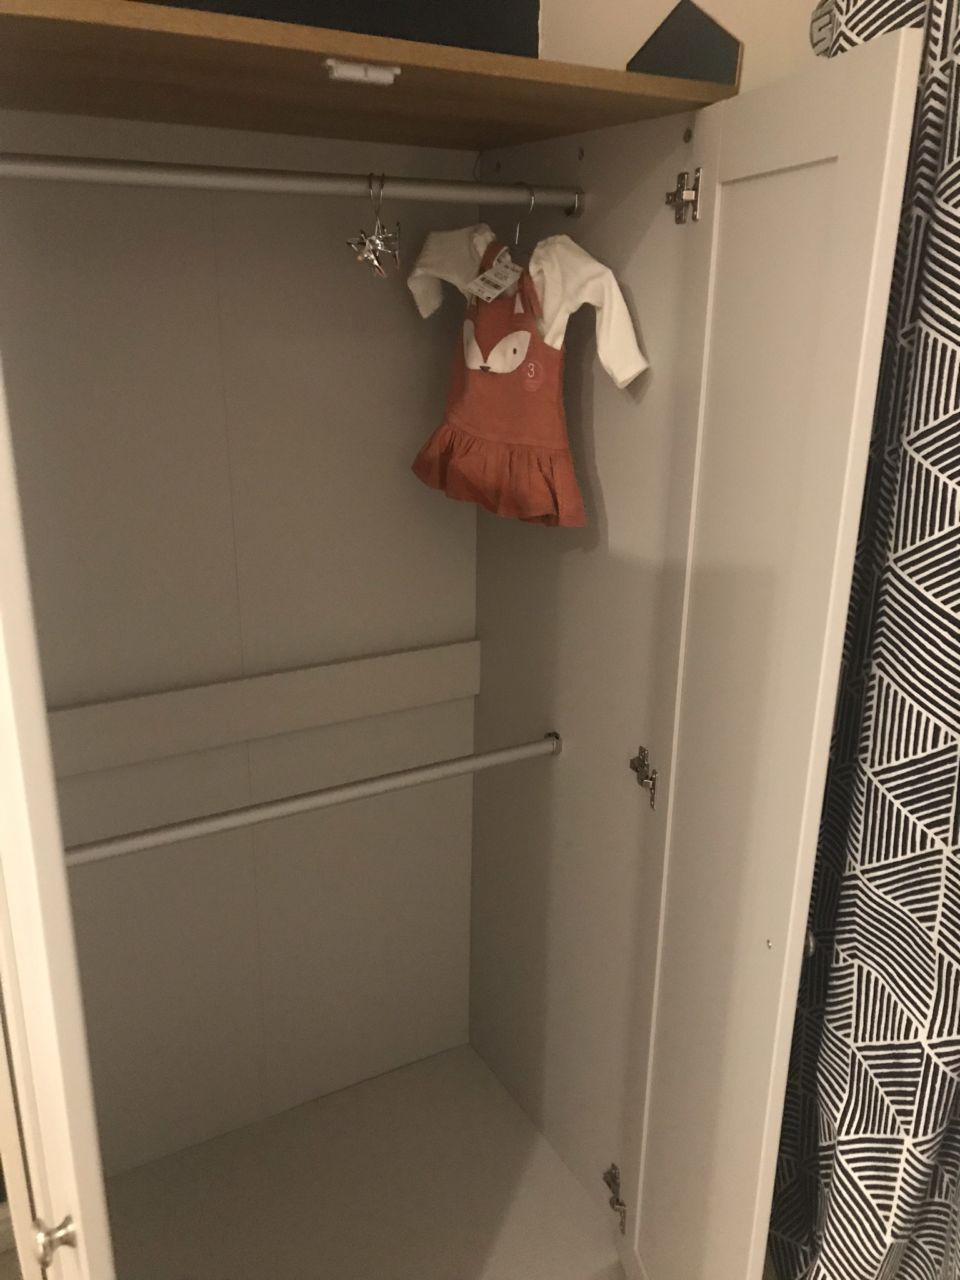 21 weeks pregnancy diary - wardrobe nursery furniture from Argos